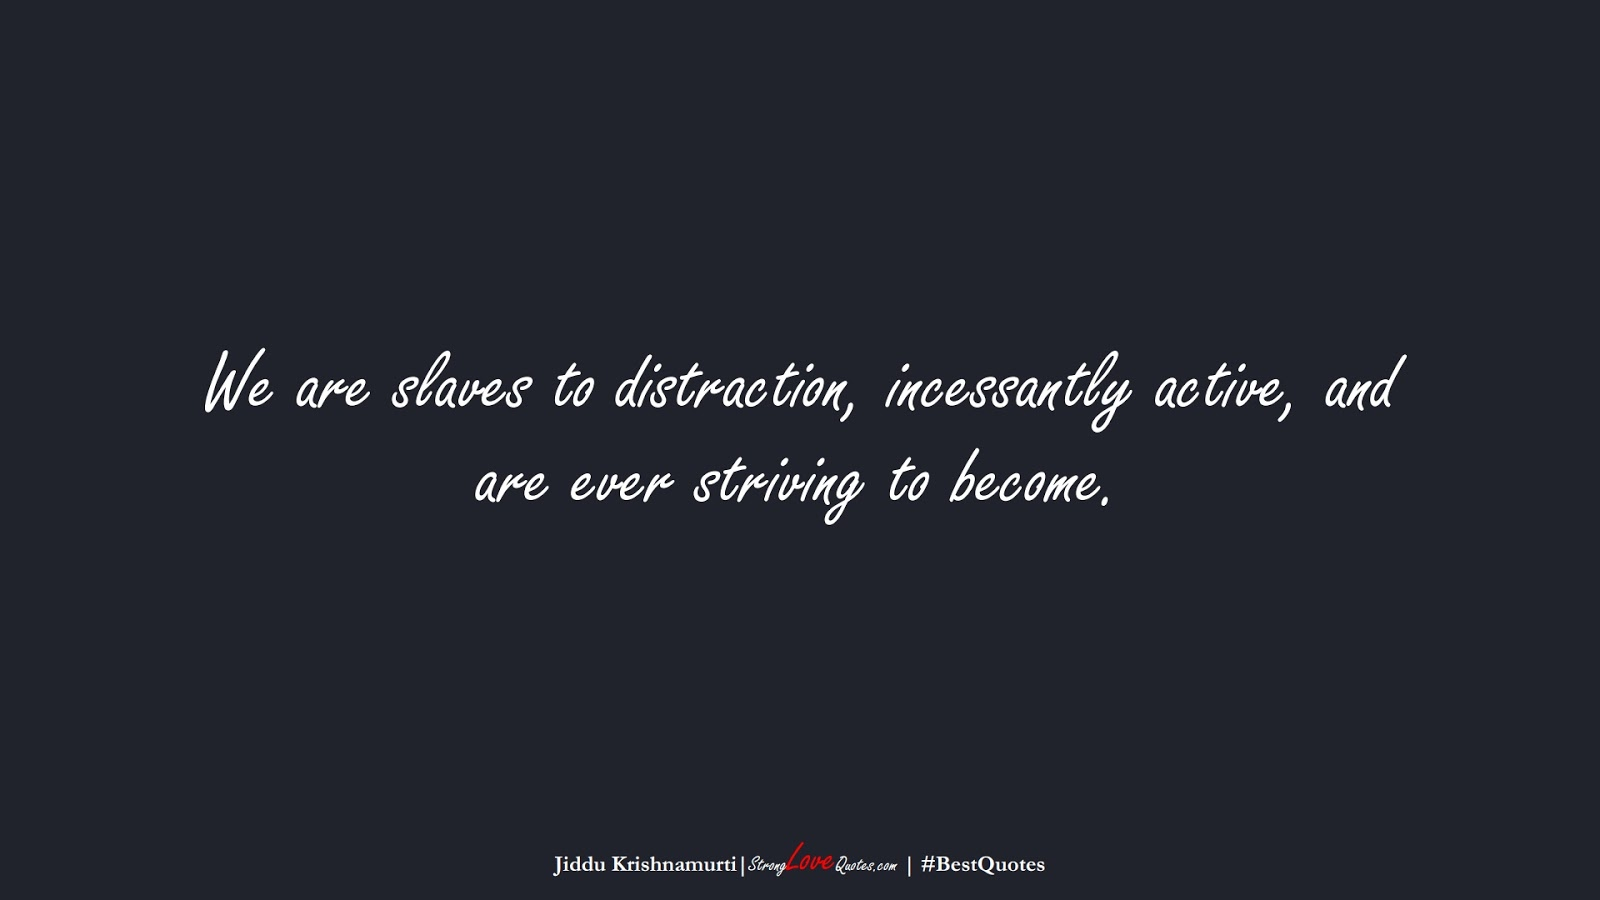 We are slaves to distraction, incessantly active, and are ever striving to become. (Jiddu Krishnamurti);  #BestQuotes